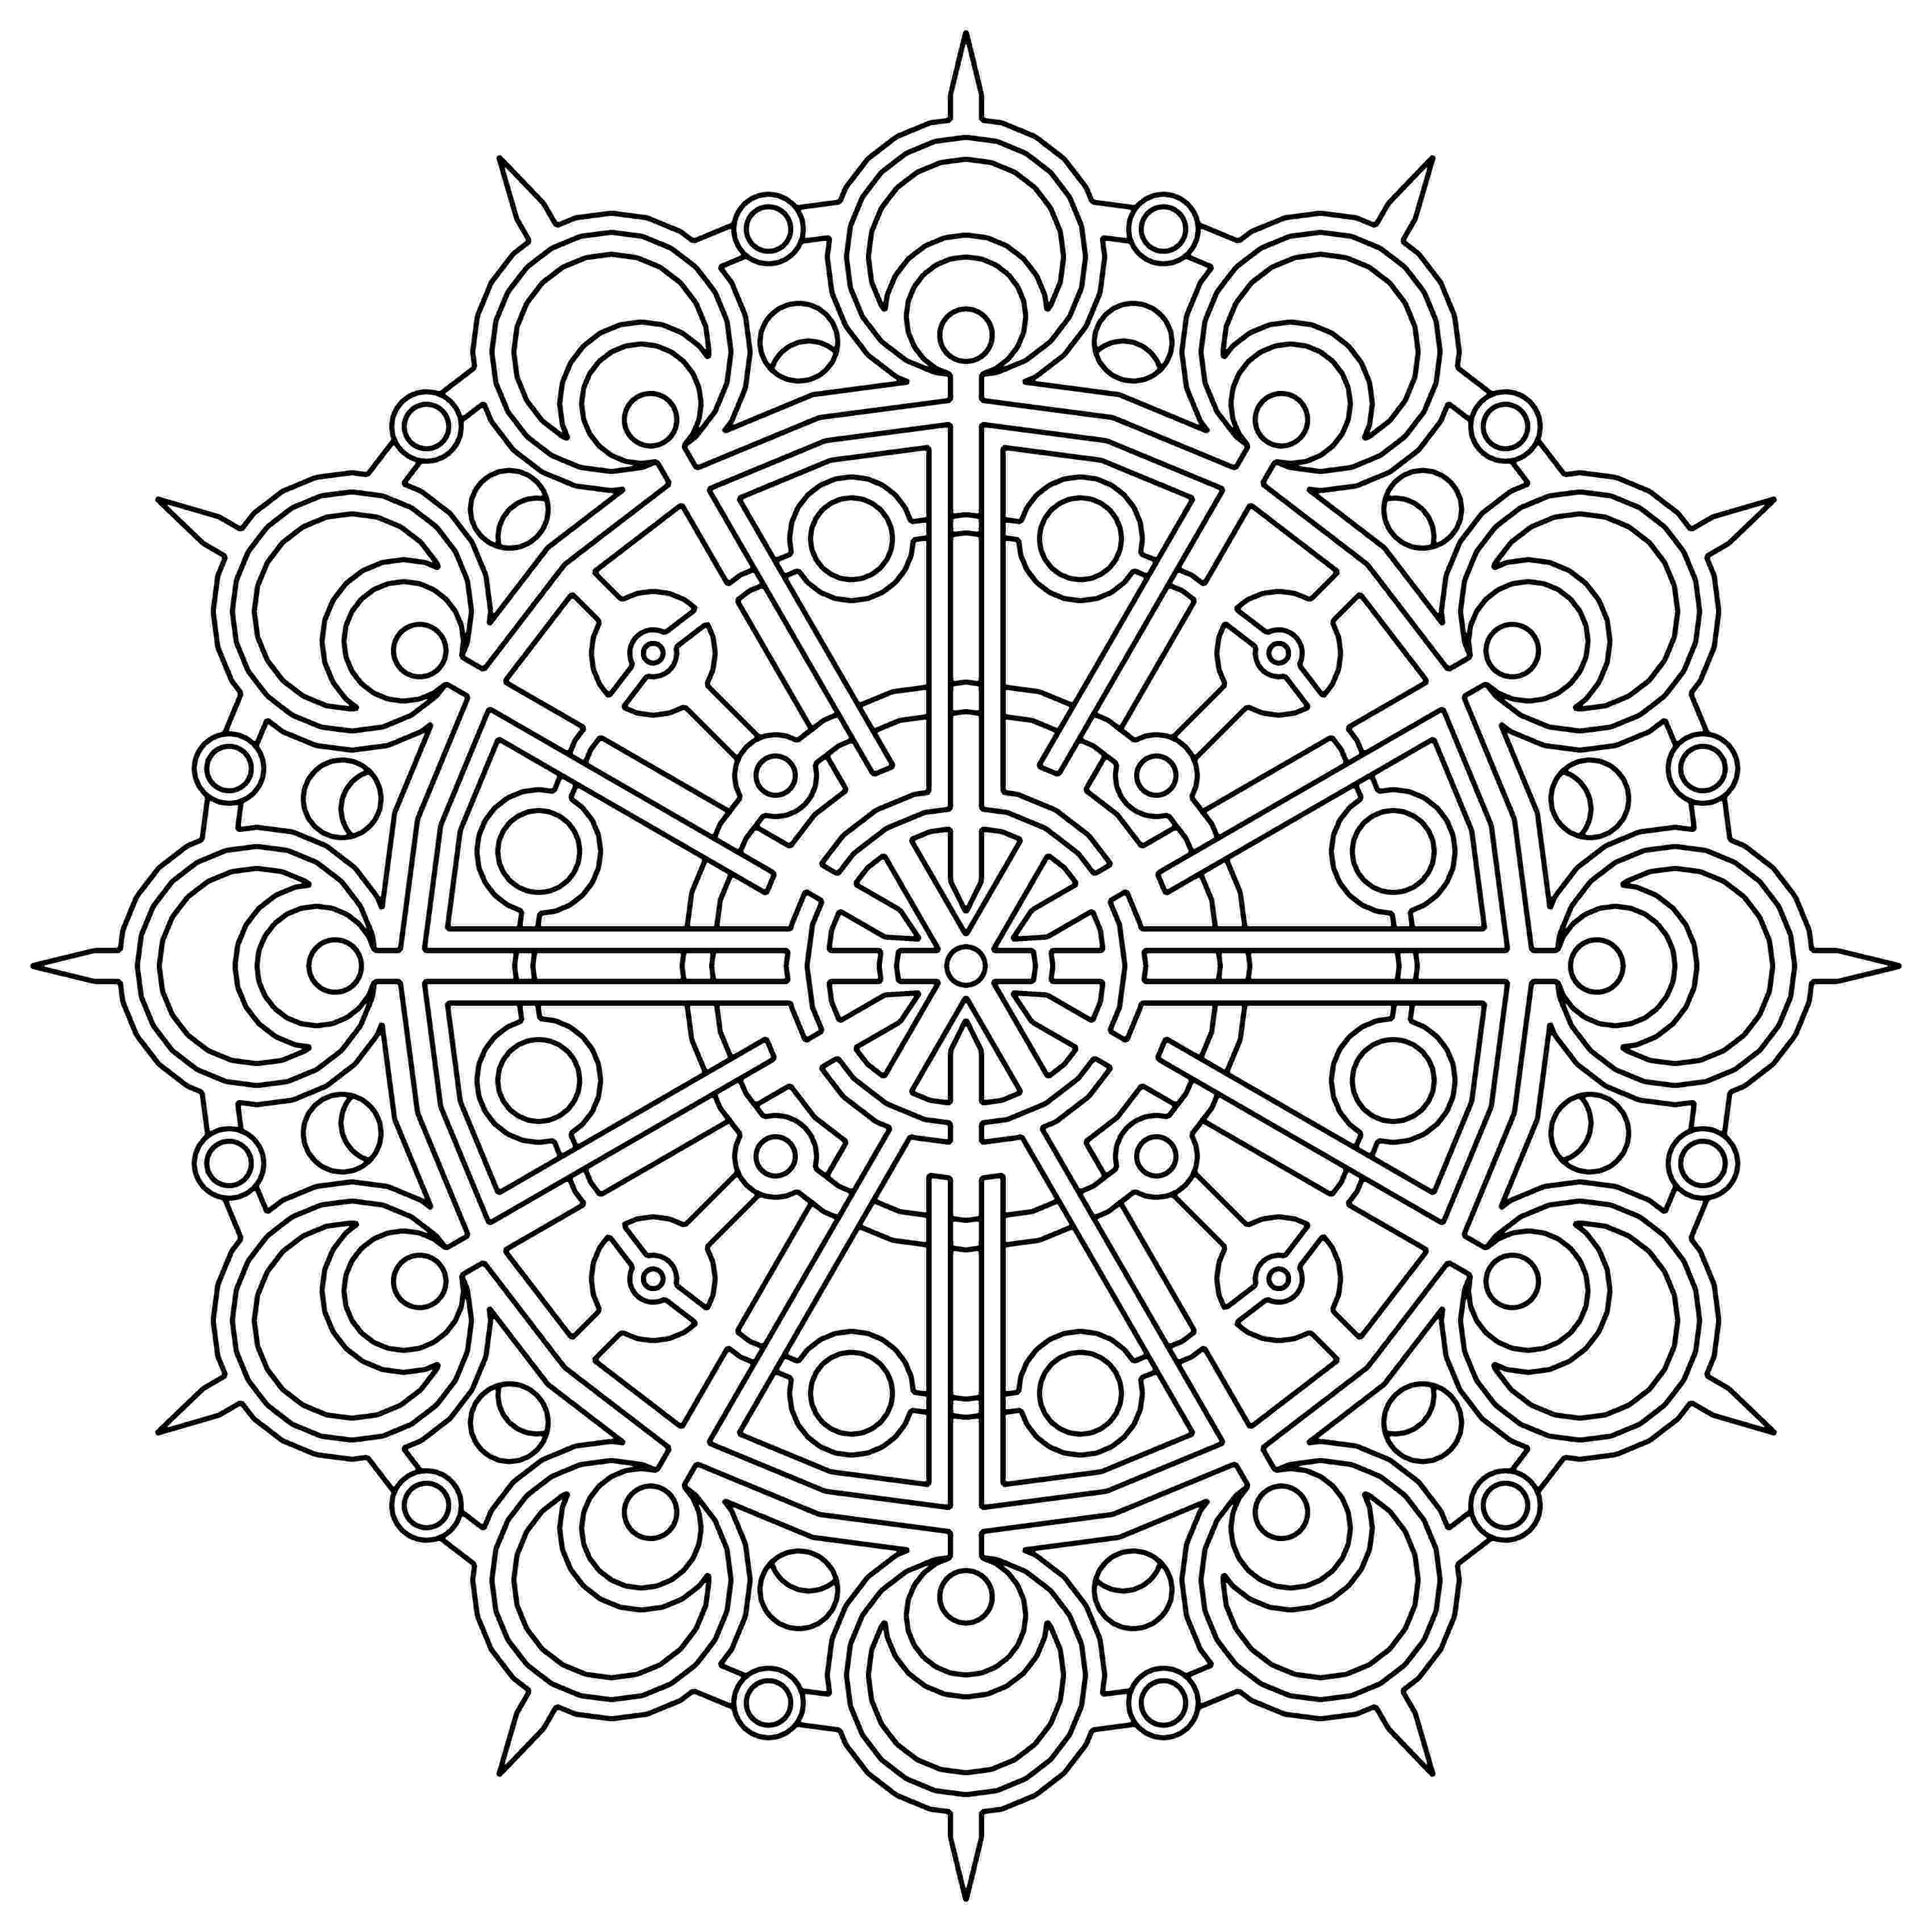 coloring pages for adults patterns free printable geometric coloring pages for kids pages adults coloring patterns for